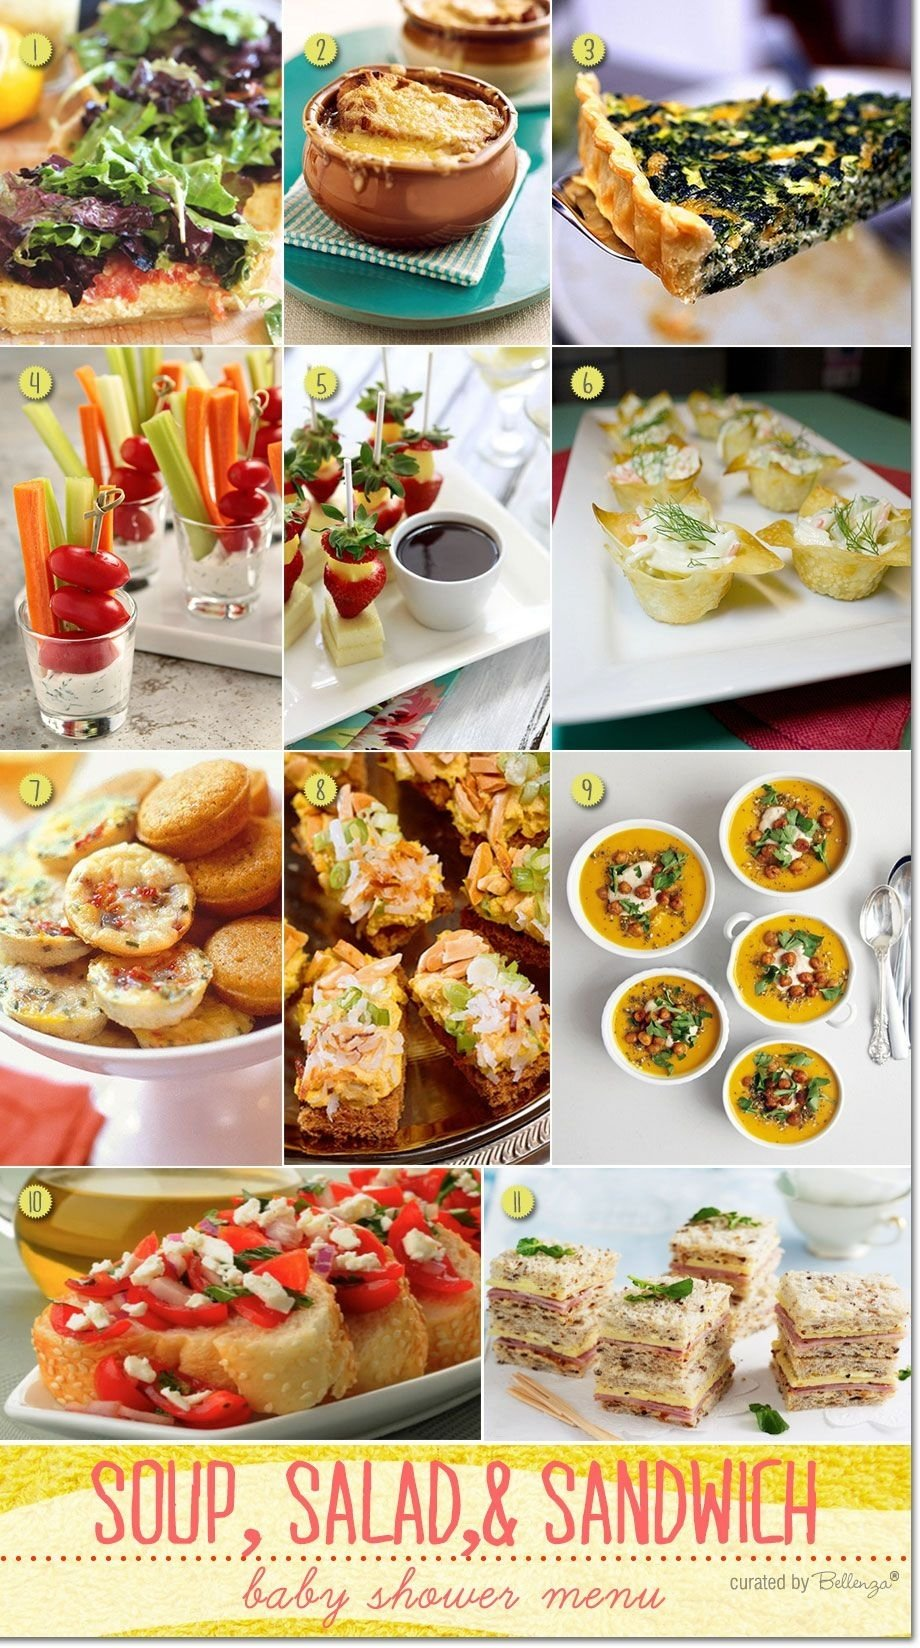 10 Perfect Menu Ideas For Baby Shower simple baby shower menu ideas baby shower menu simple baby shower 4 2020